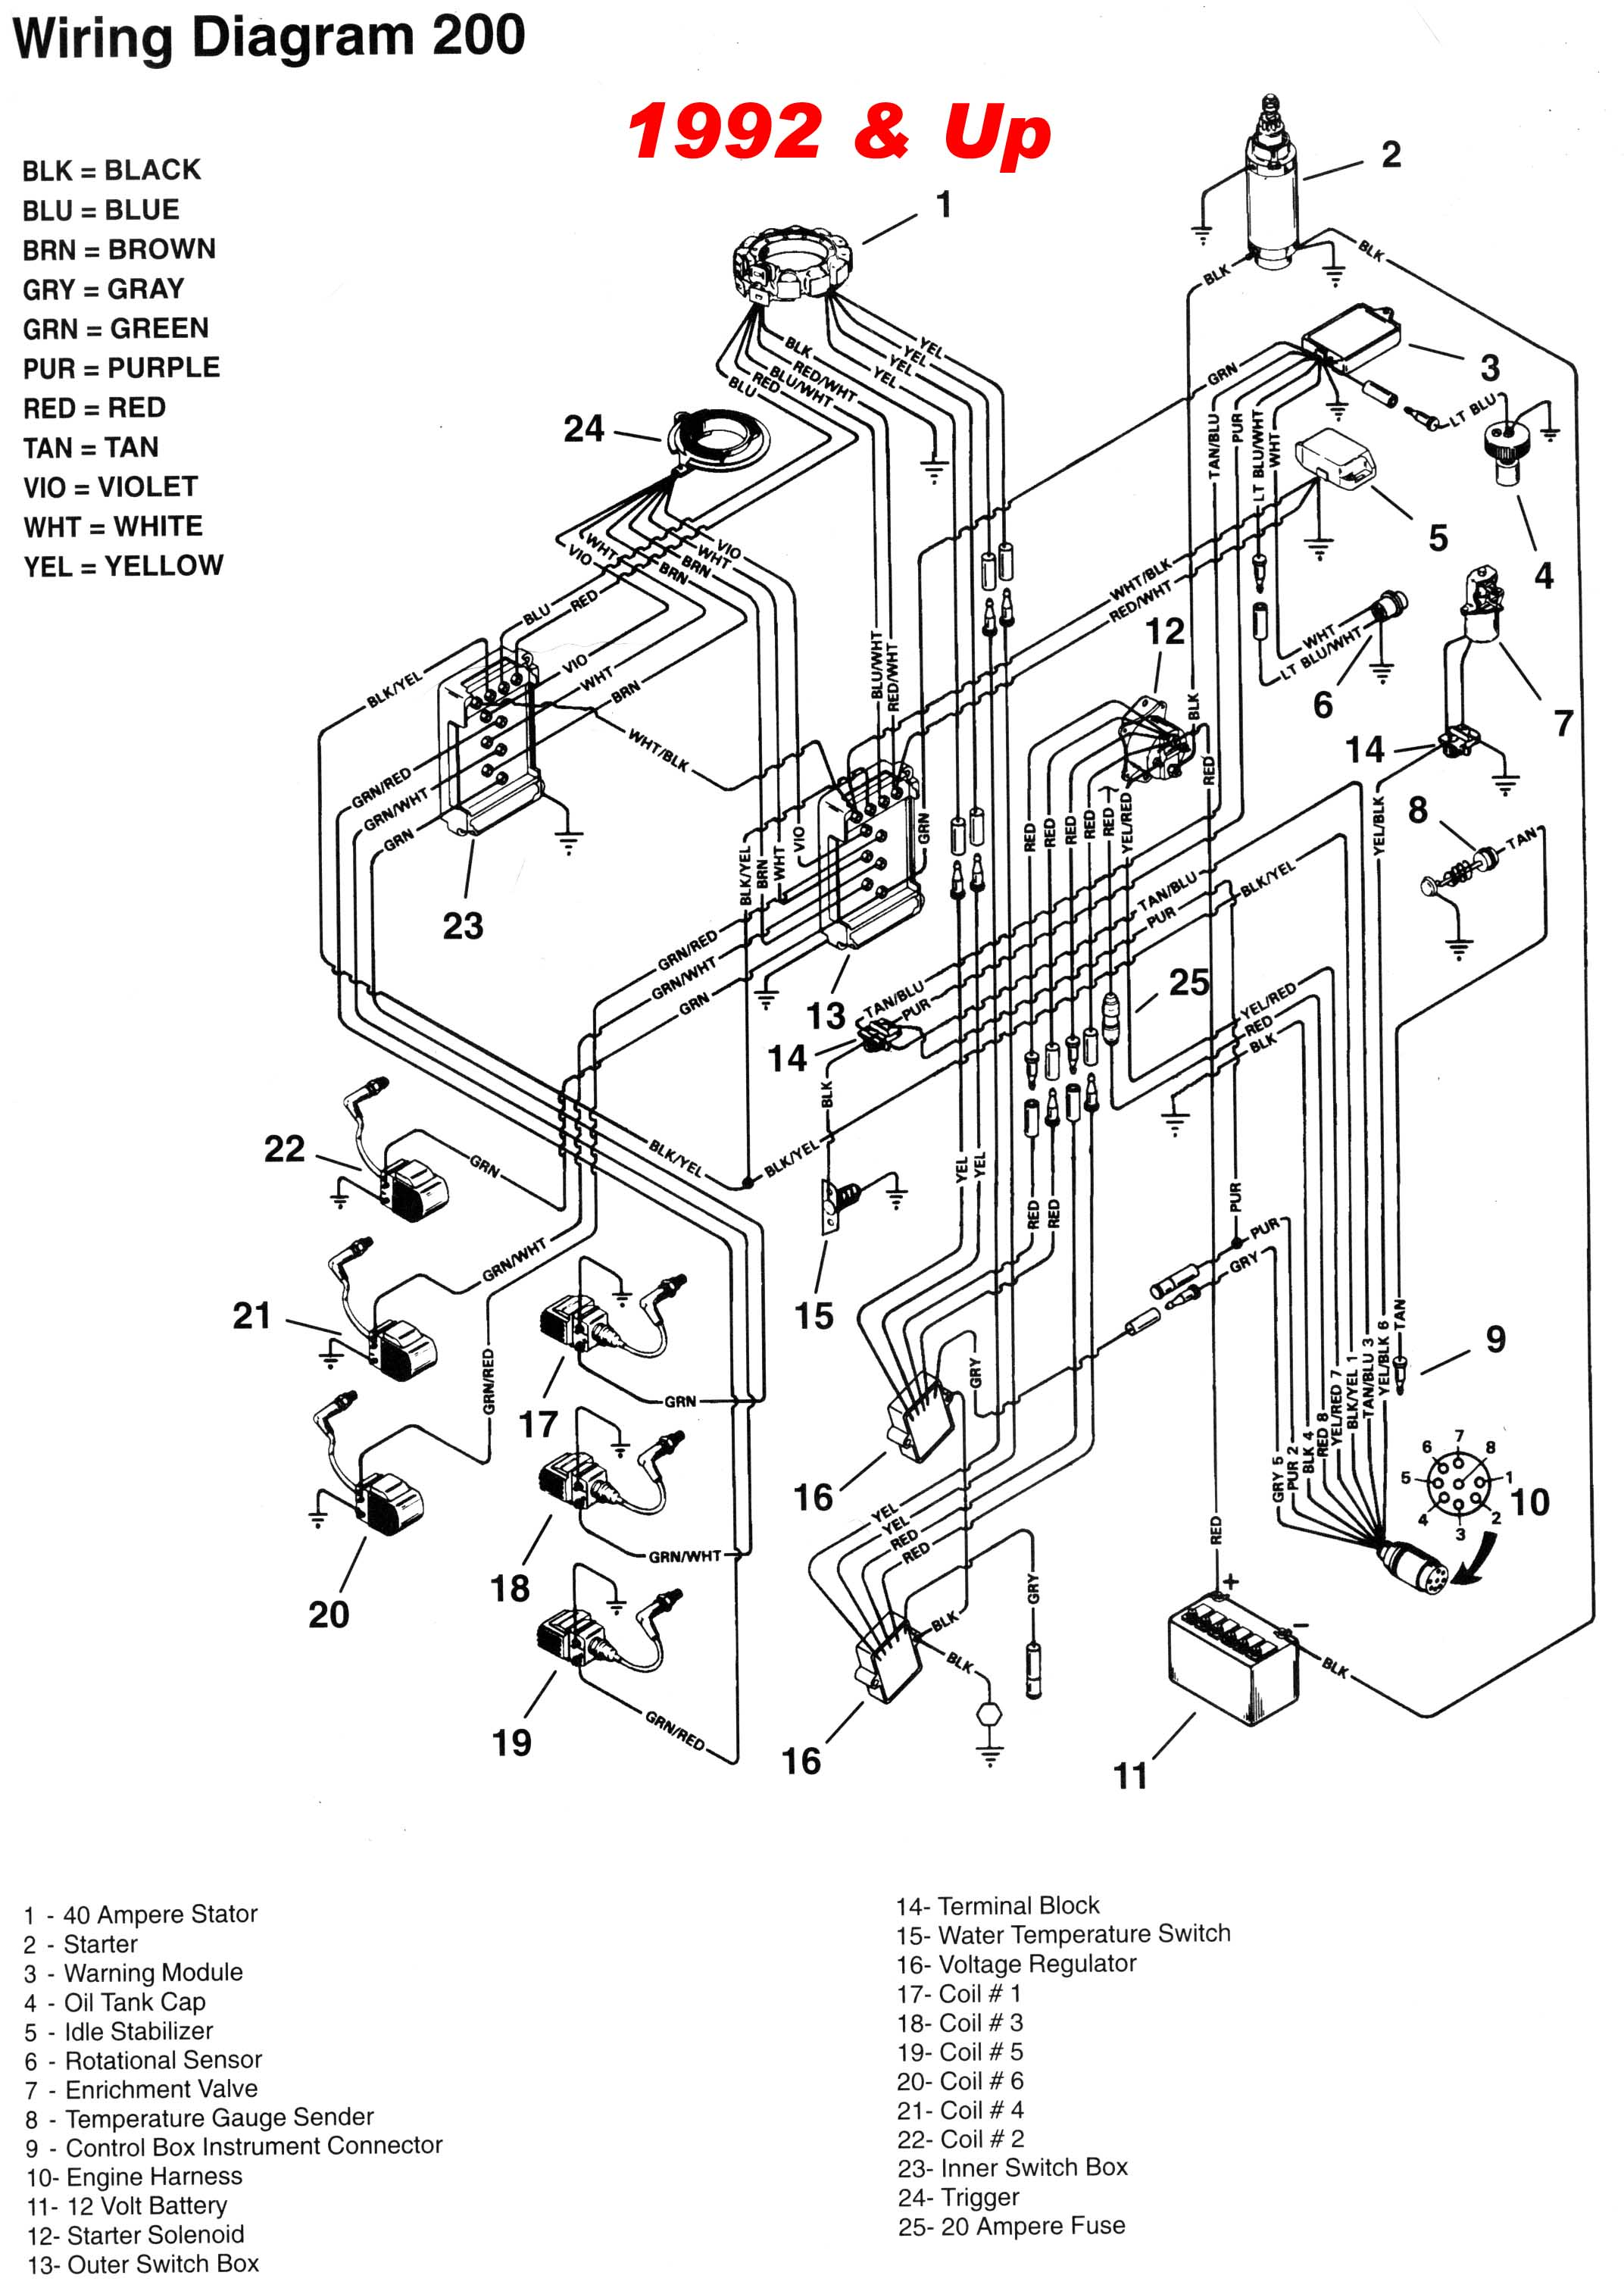 Electrical System, Wiring diagram for 92up fishing motor Mercury ...